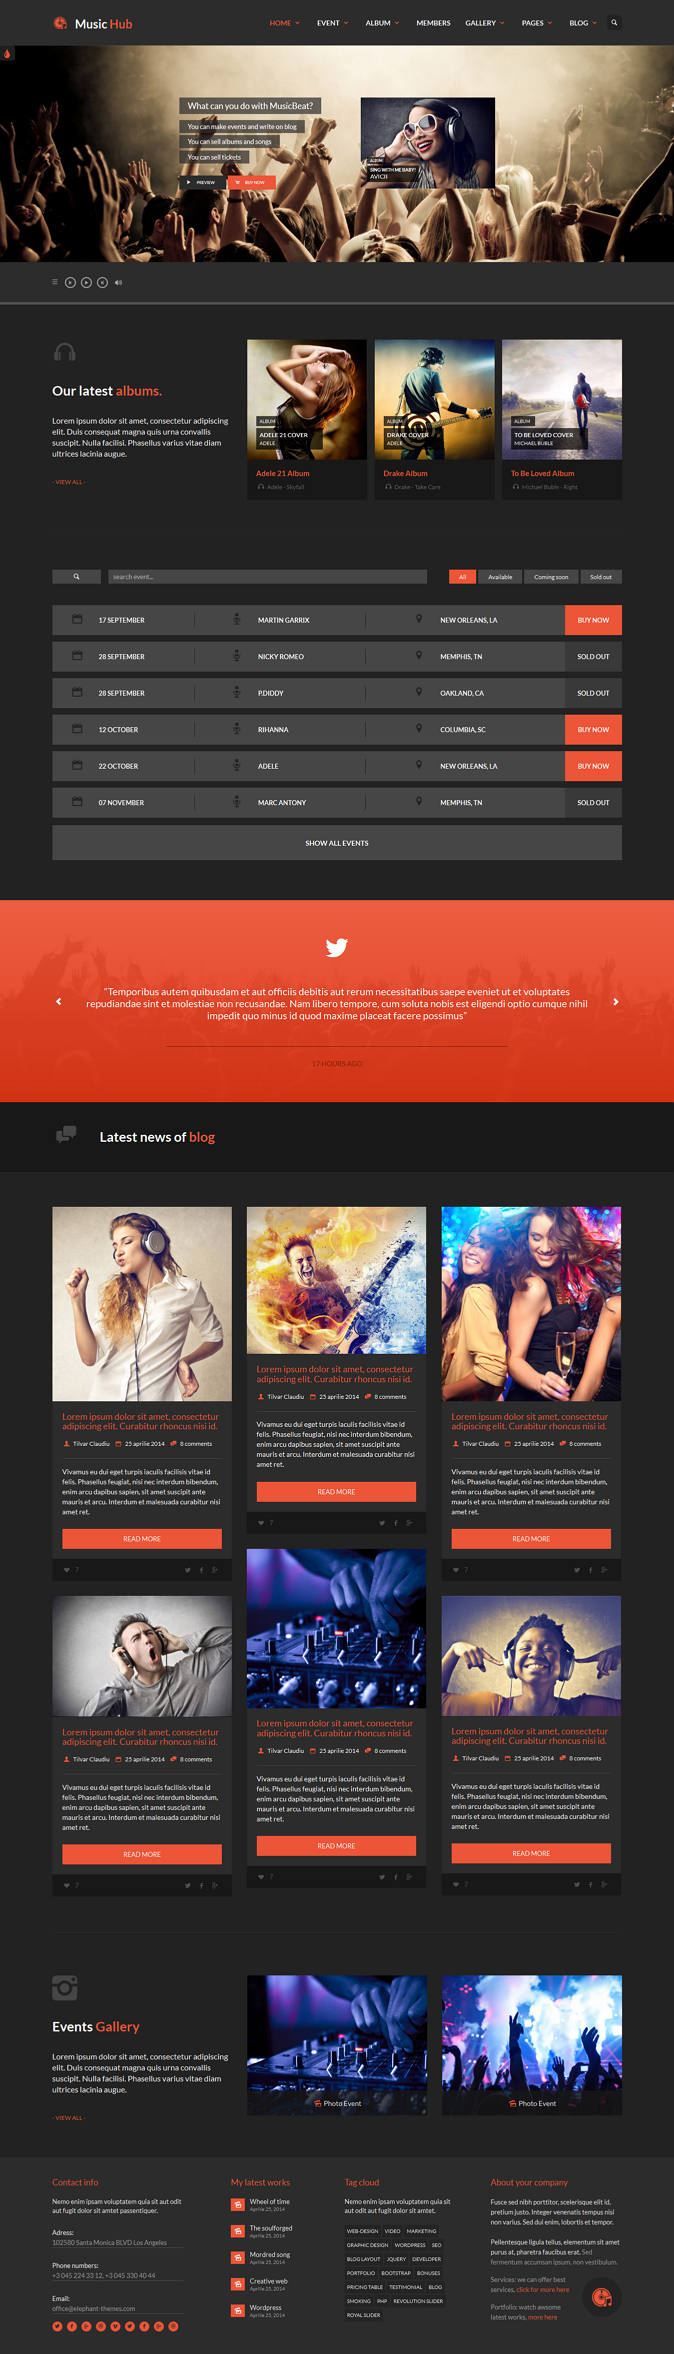 Music Hub is the best template for music, club, party, radio stations, bands, events or blogging ...